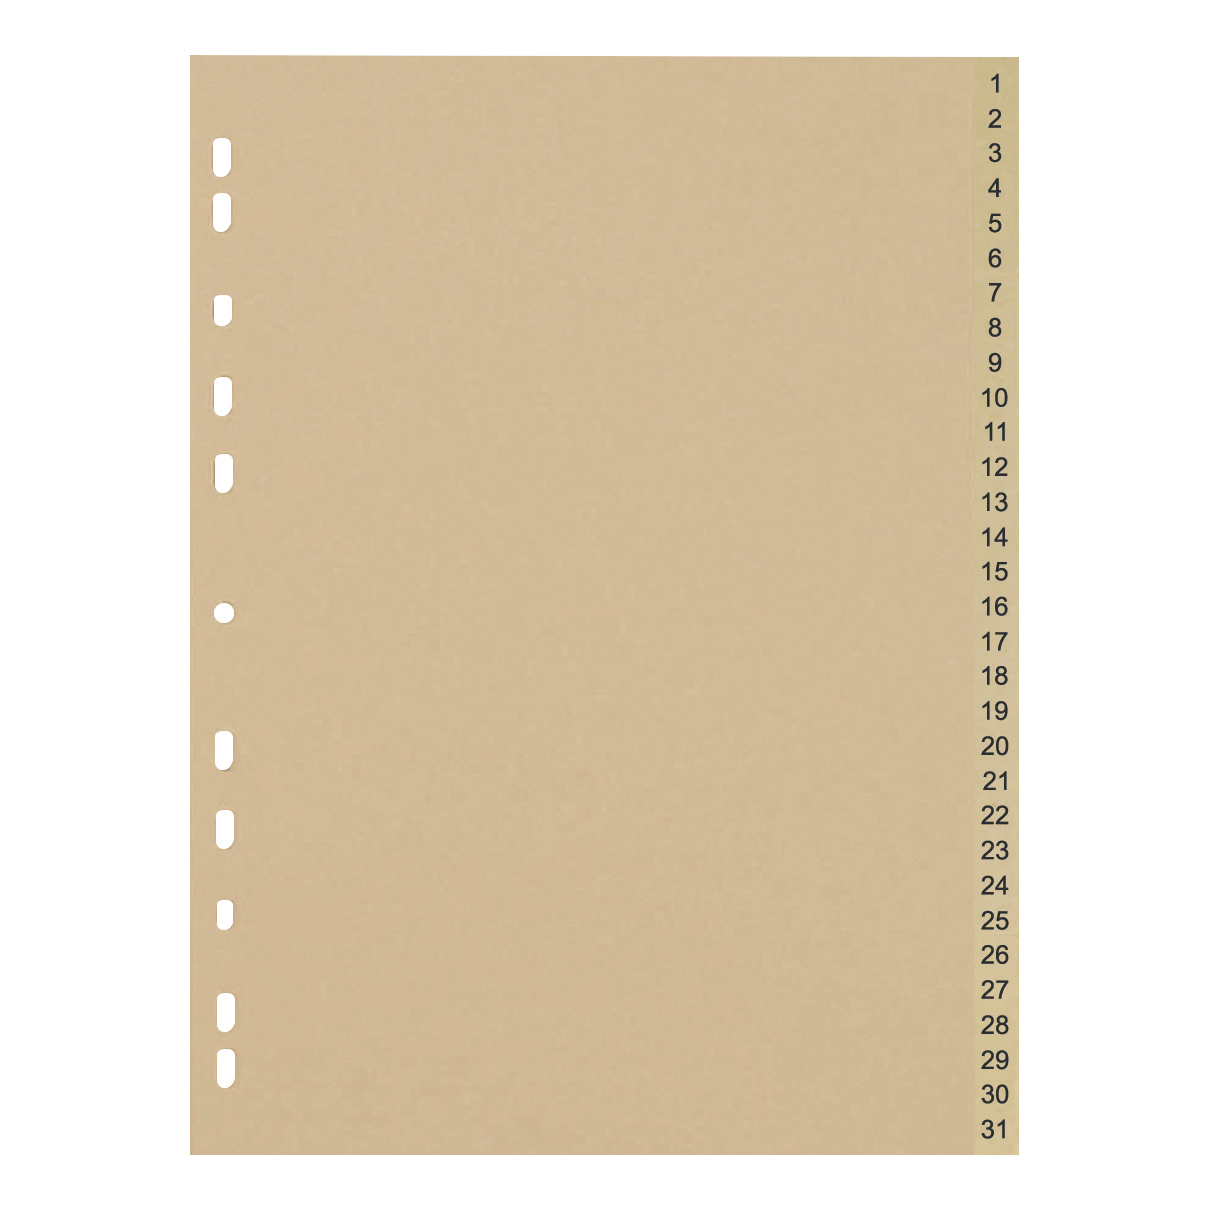 Dividers 5 Star Eco Index 1-31 Recycled Card Multipunched 150gsm A4 Buff